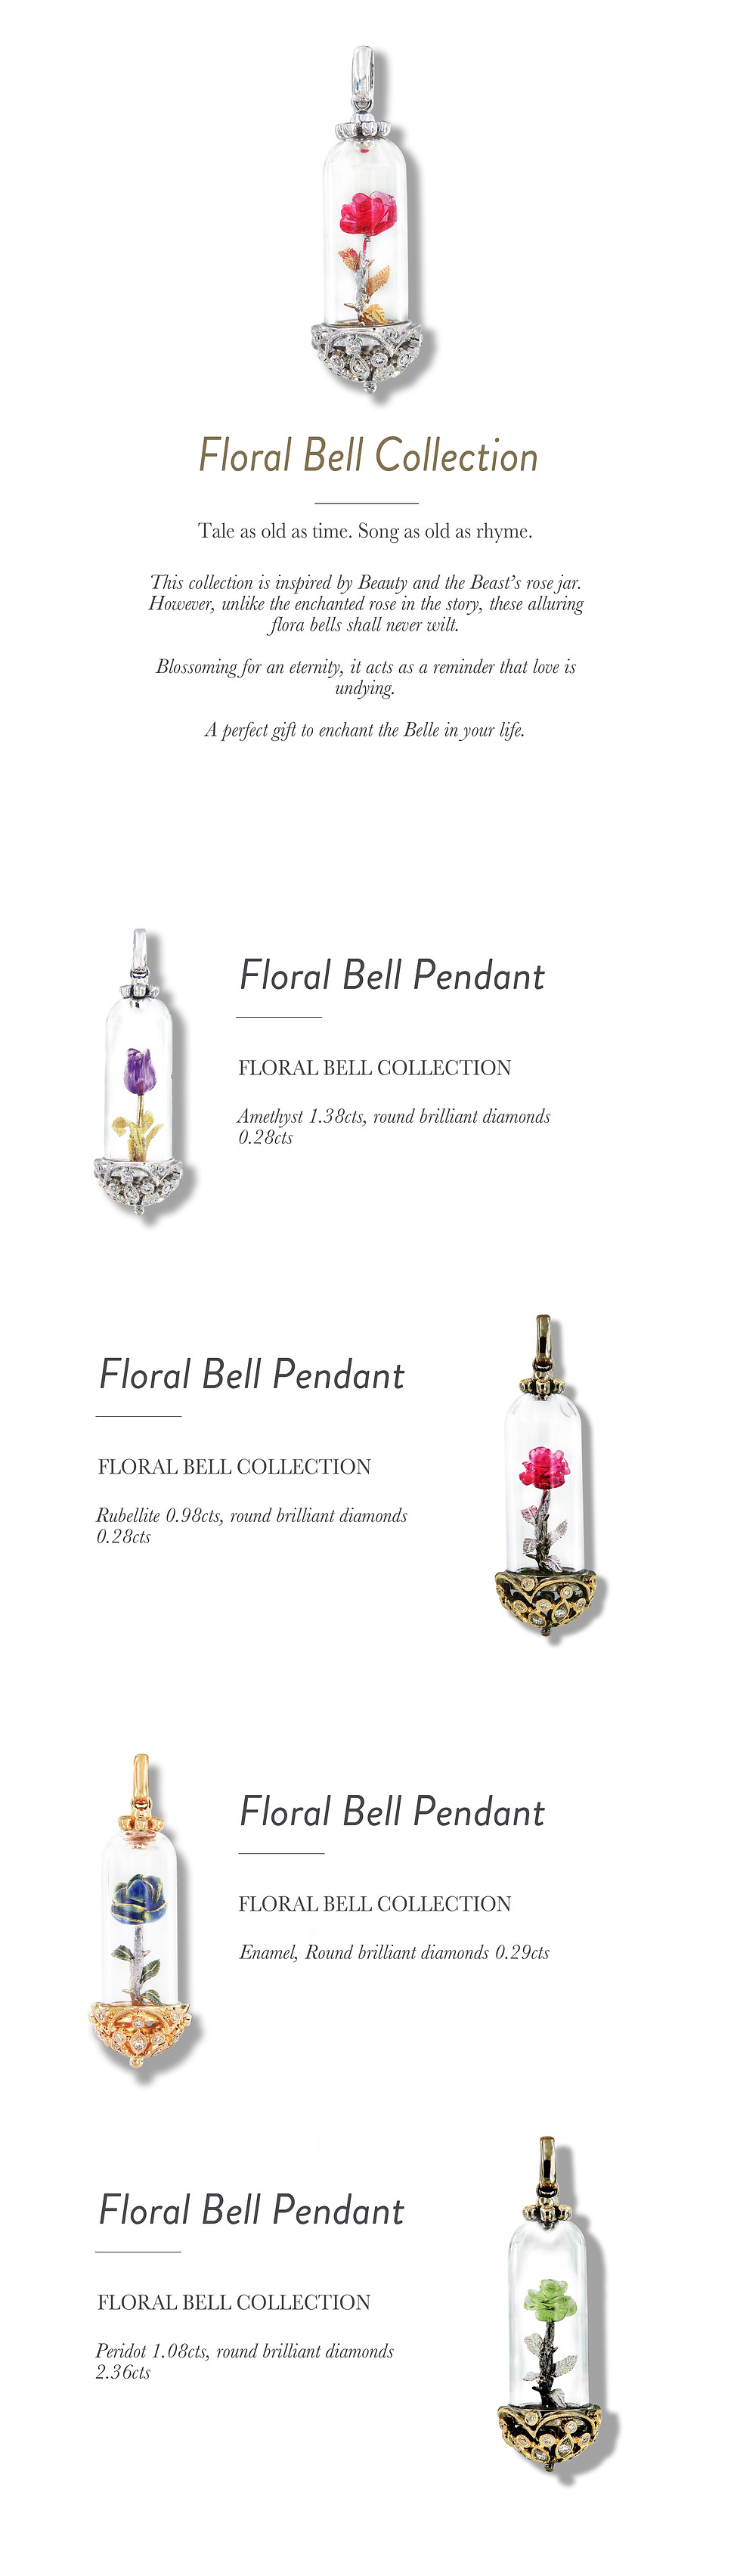 floral bell full page.jpg